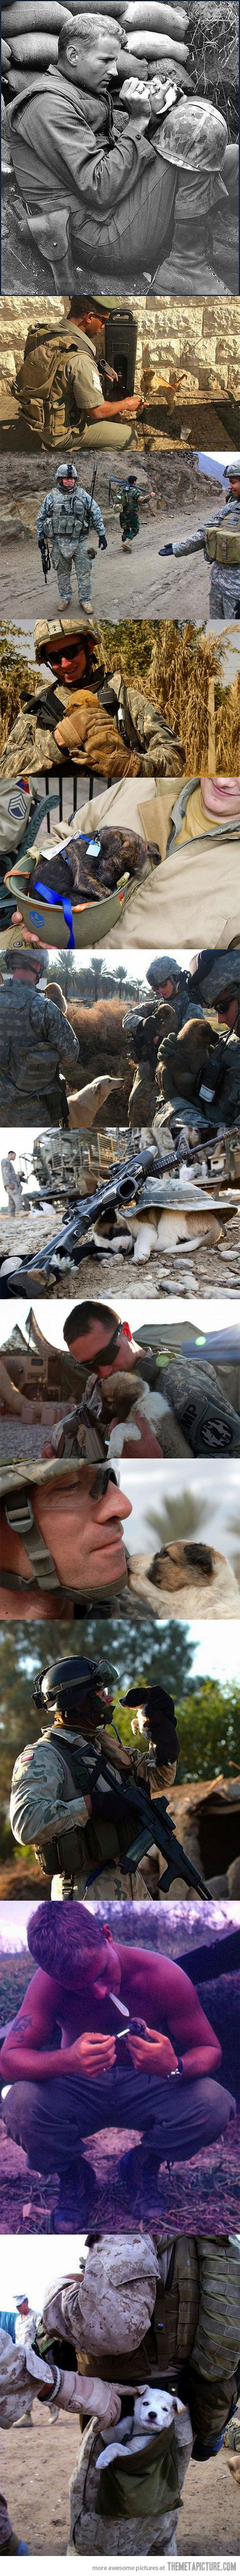 best pictures ever..Puppies, Dogs, Soldiers, Best Friends, Military Men, My Heart, Baby Animal, Heart Warm, Combat Boots